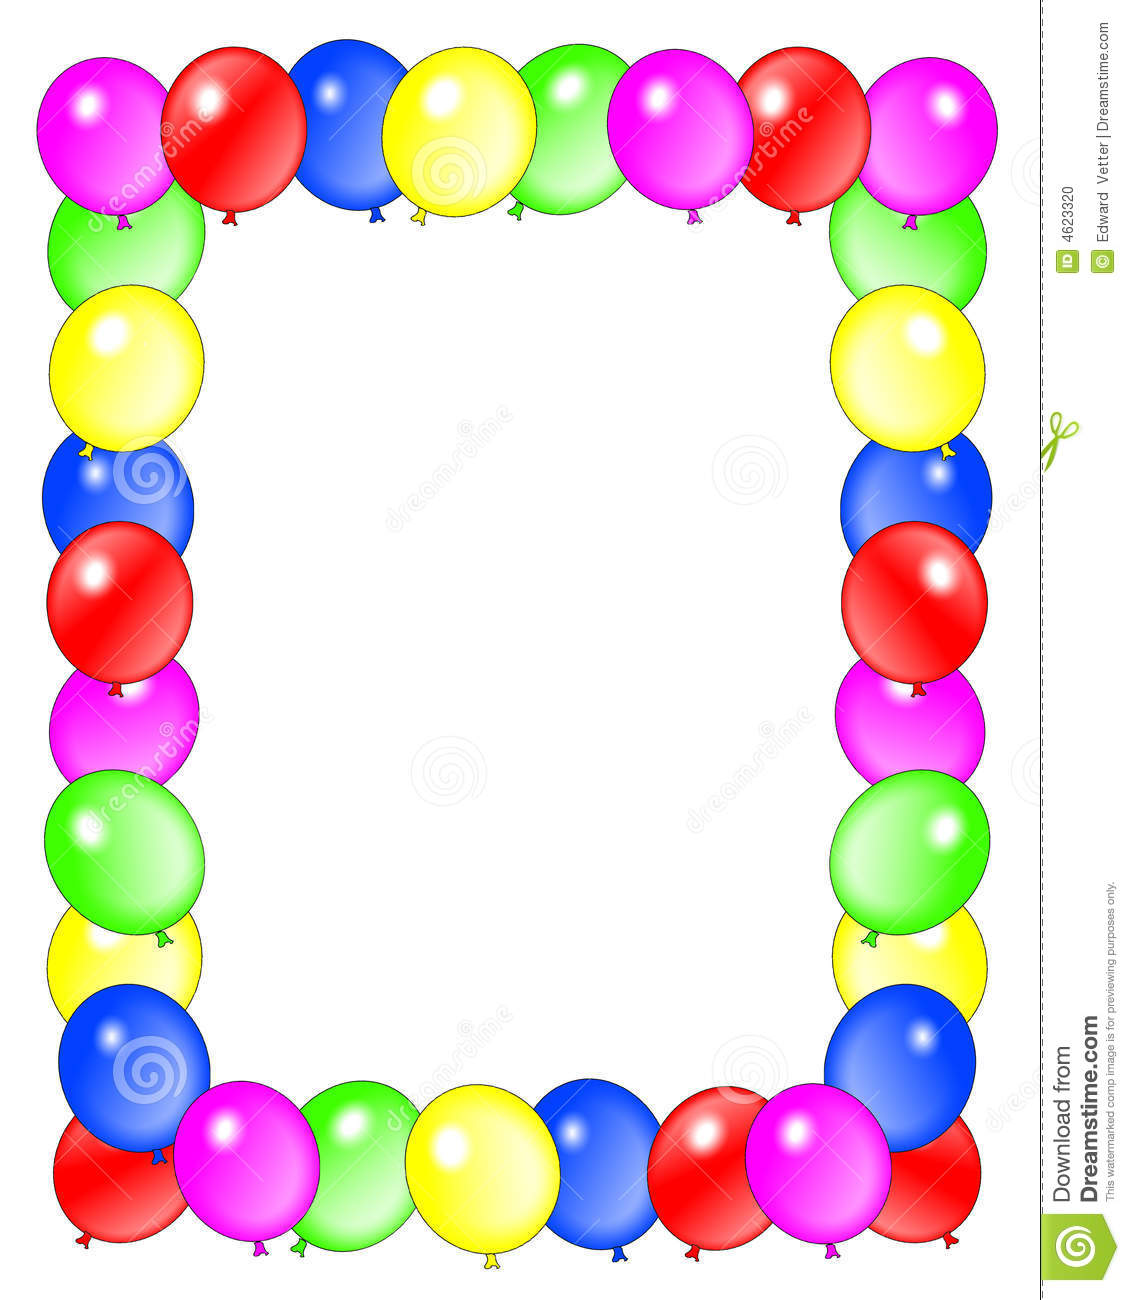 birthday borders and frames ; birthday-clip-art-borders-birthday-balloons-border-frame-4623320